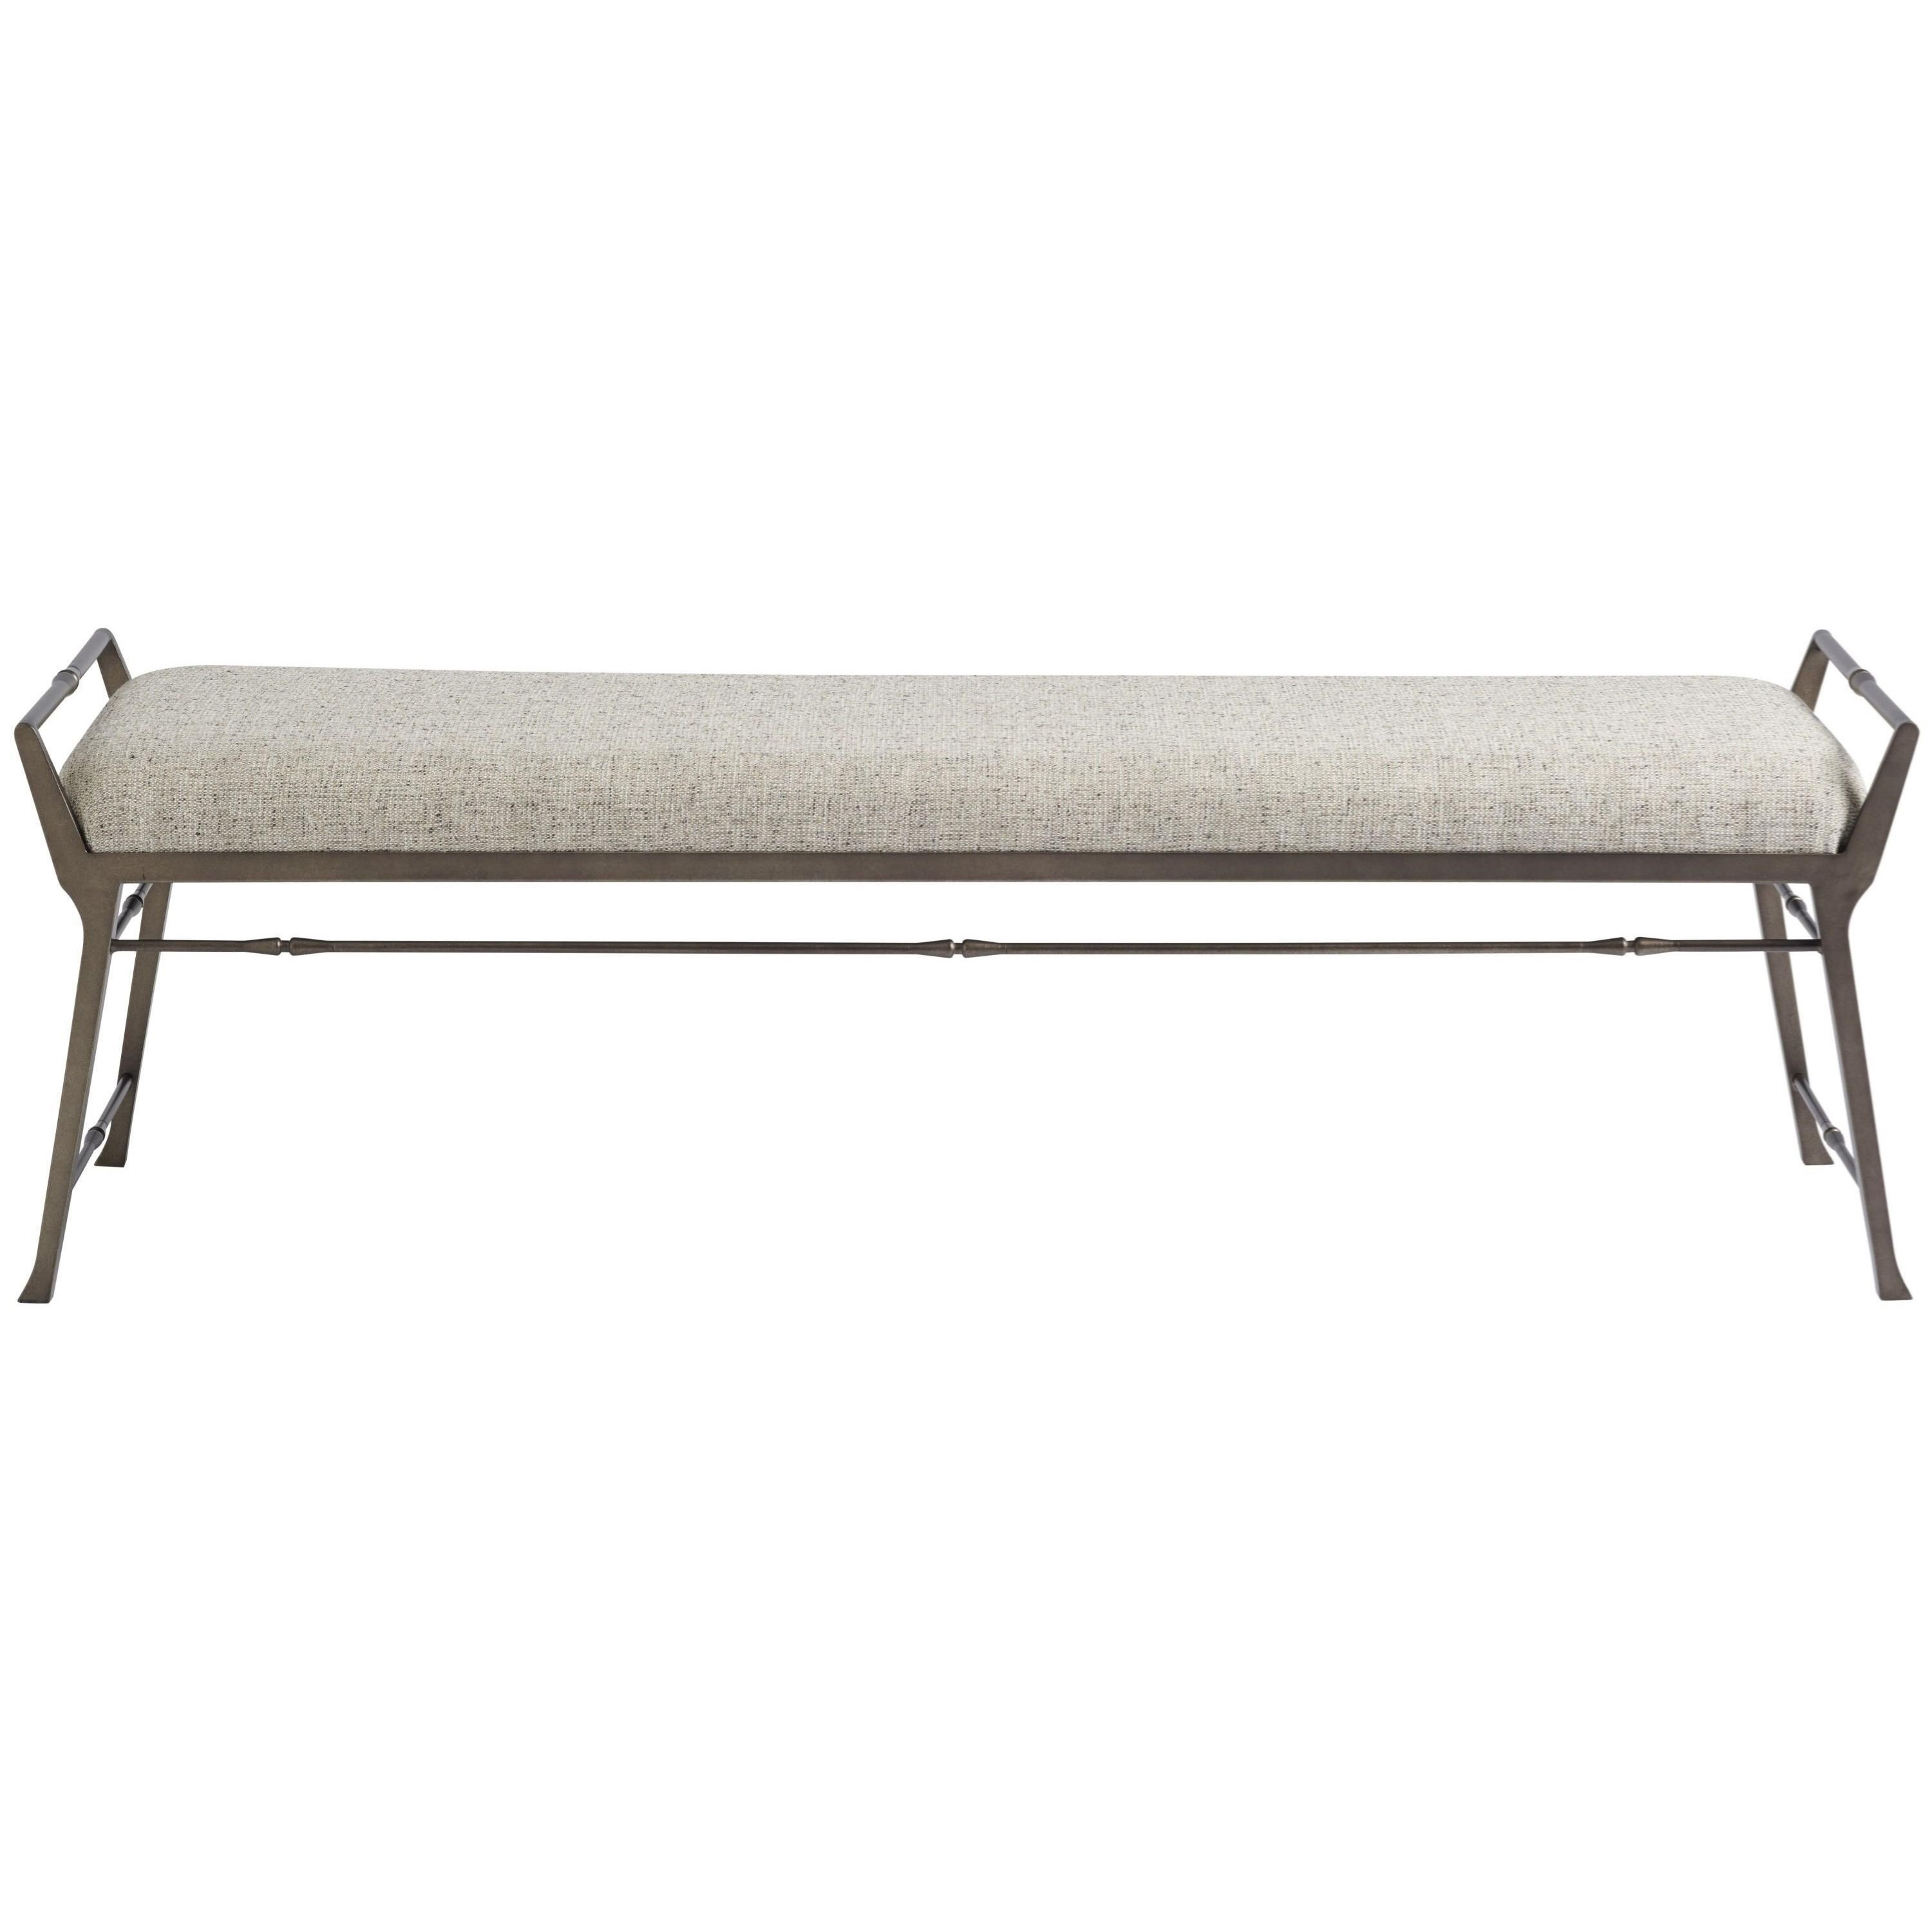 Traditions Bench by Universal at Baer's Furniture